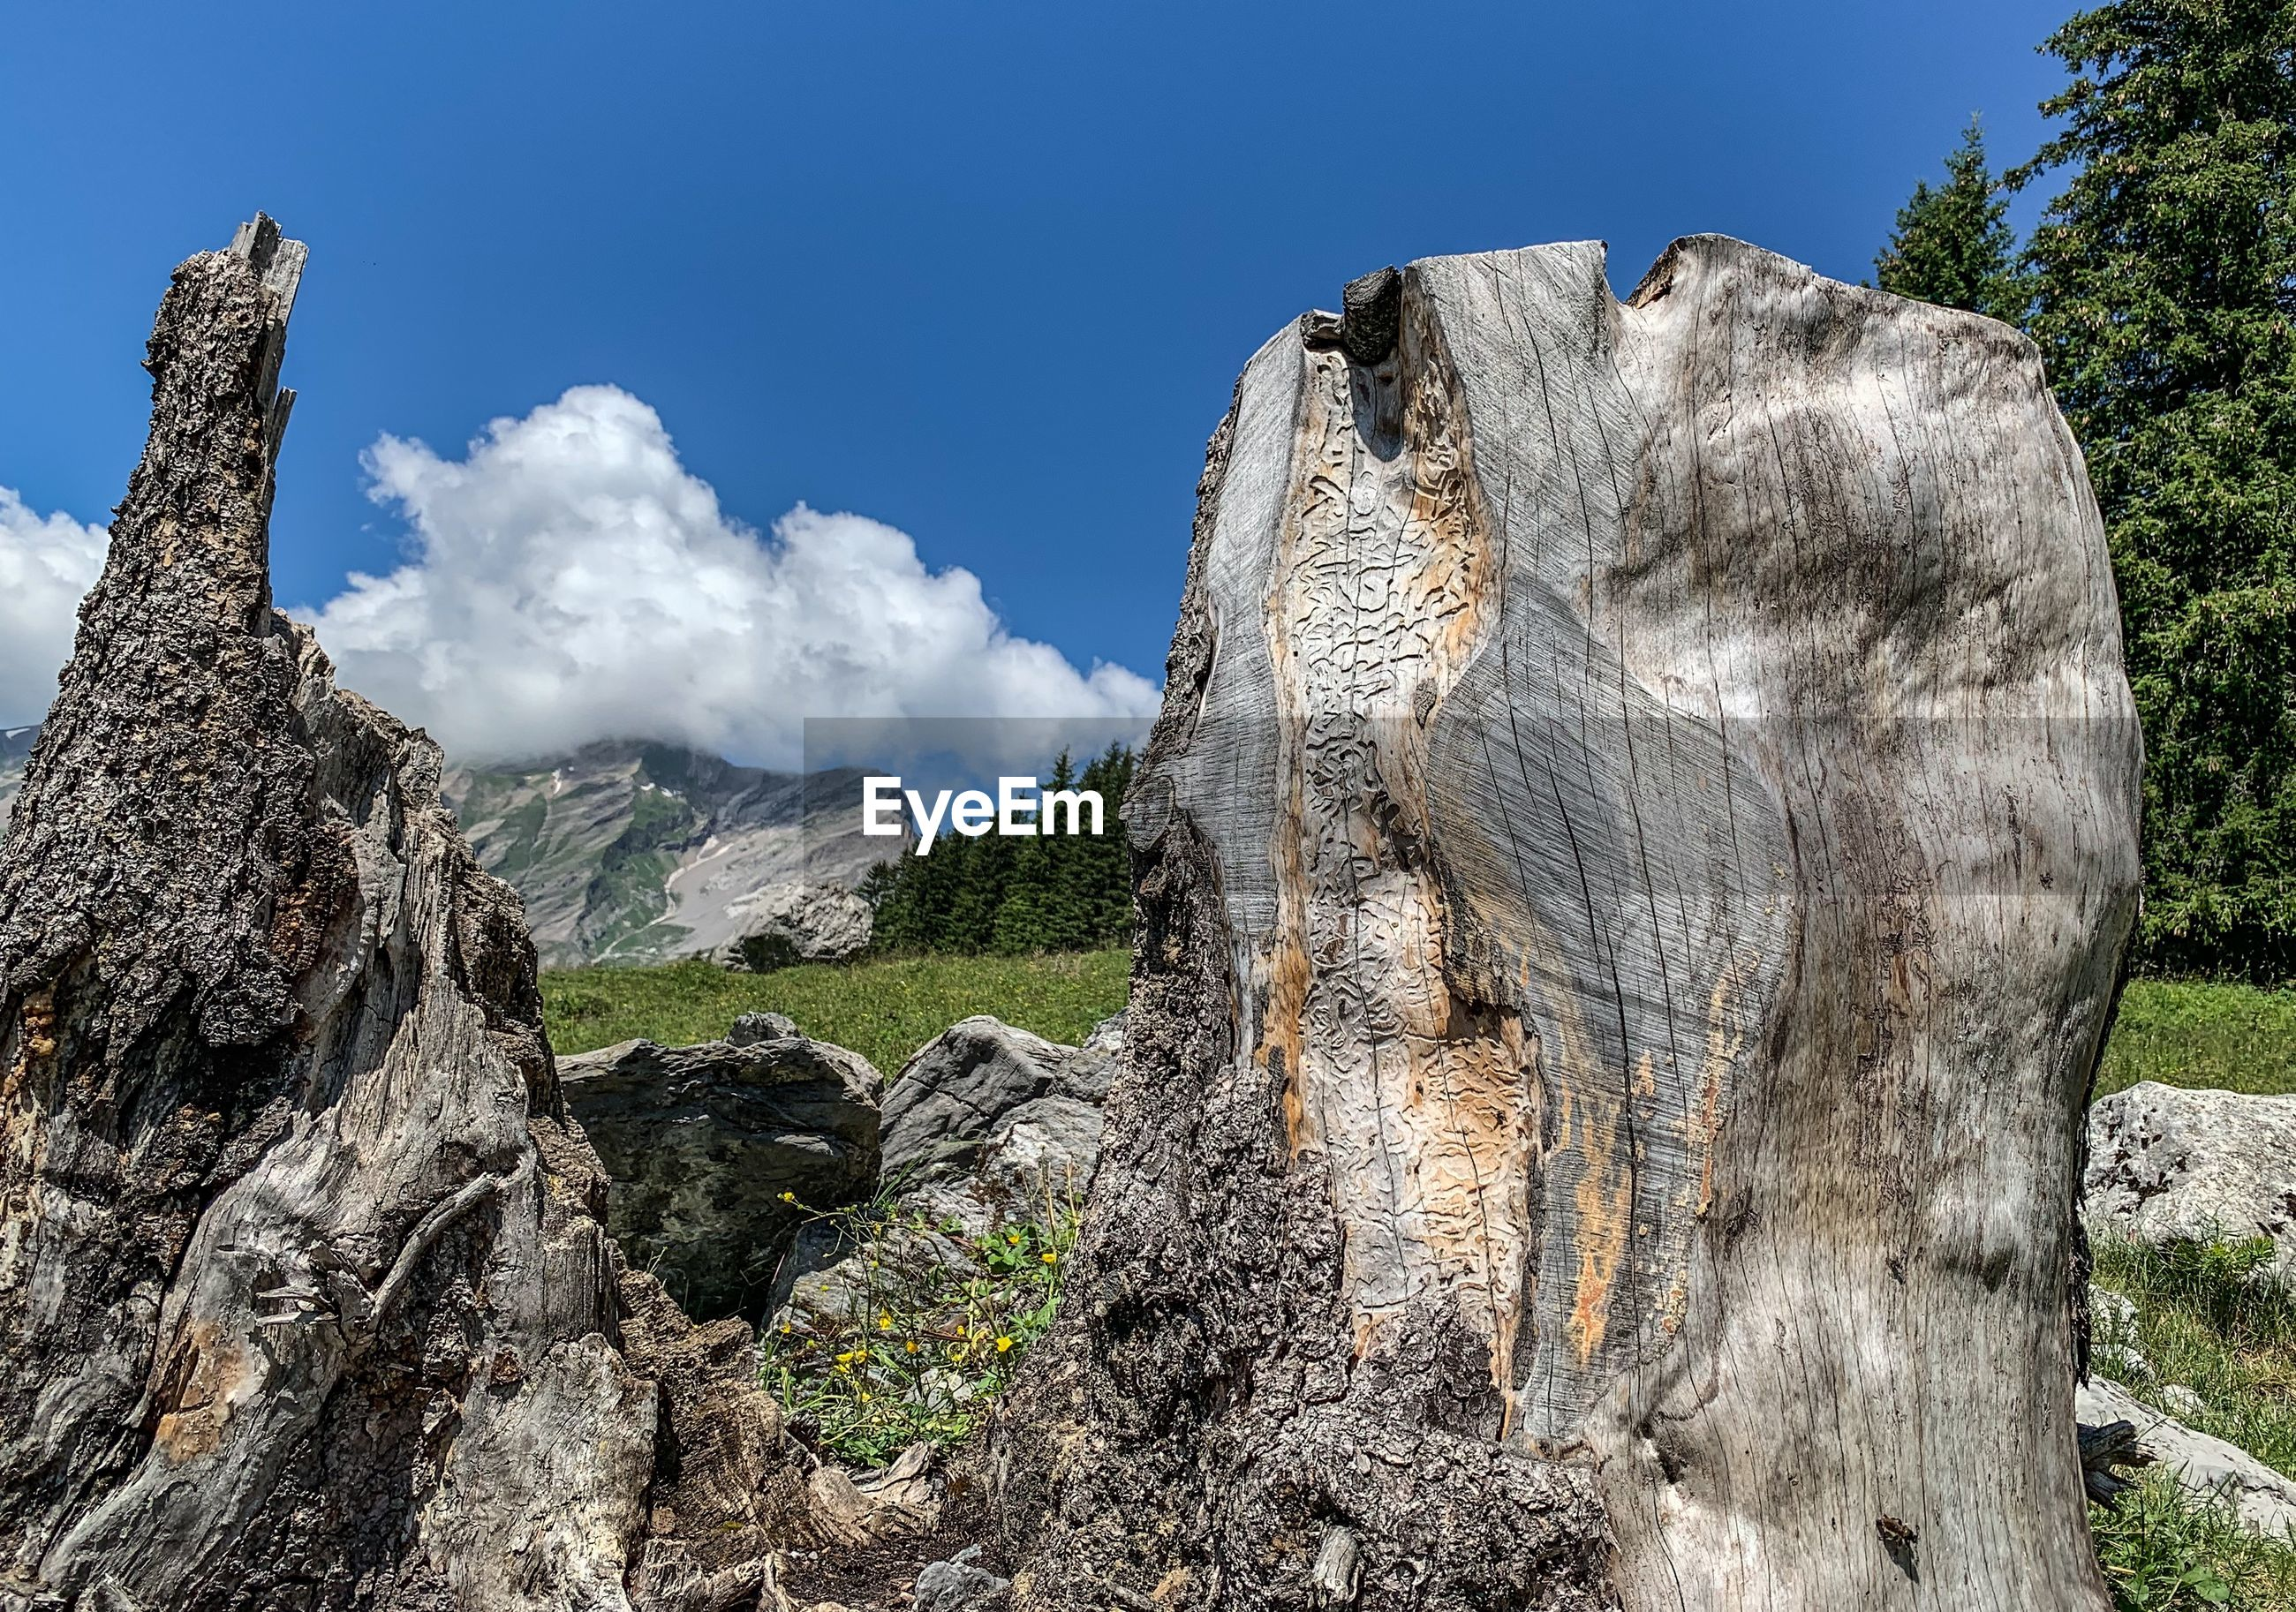 LOW ANGLE VIEW OF ROCK FORMATION ON LAND AGAINST SKY